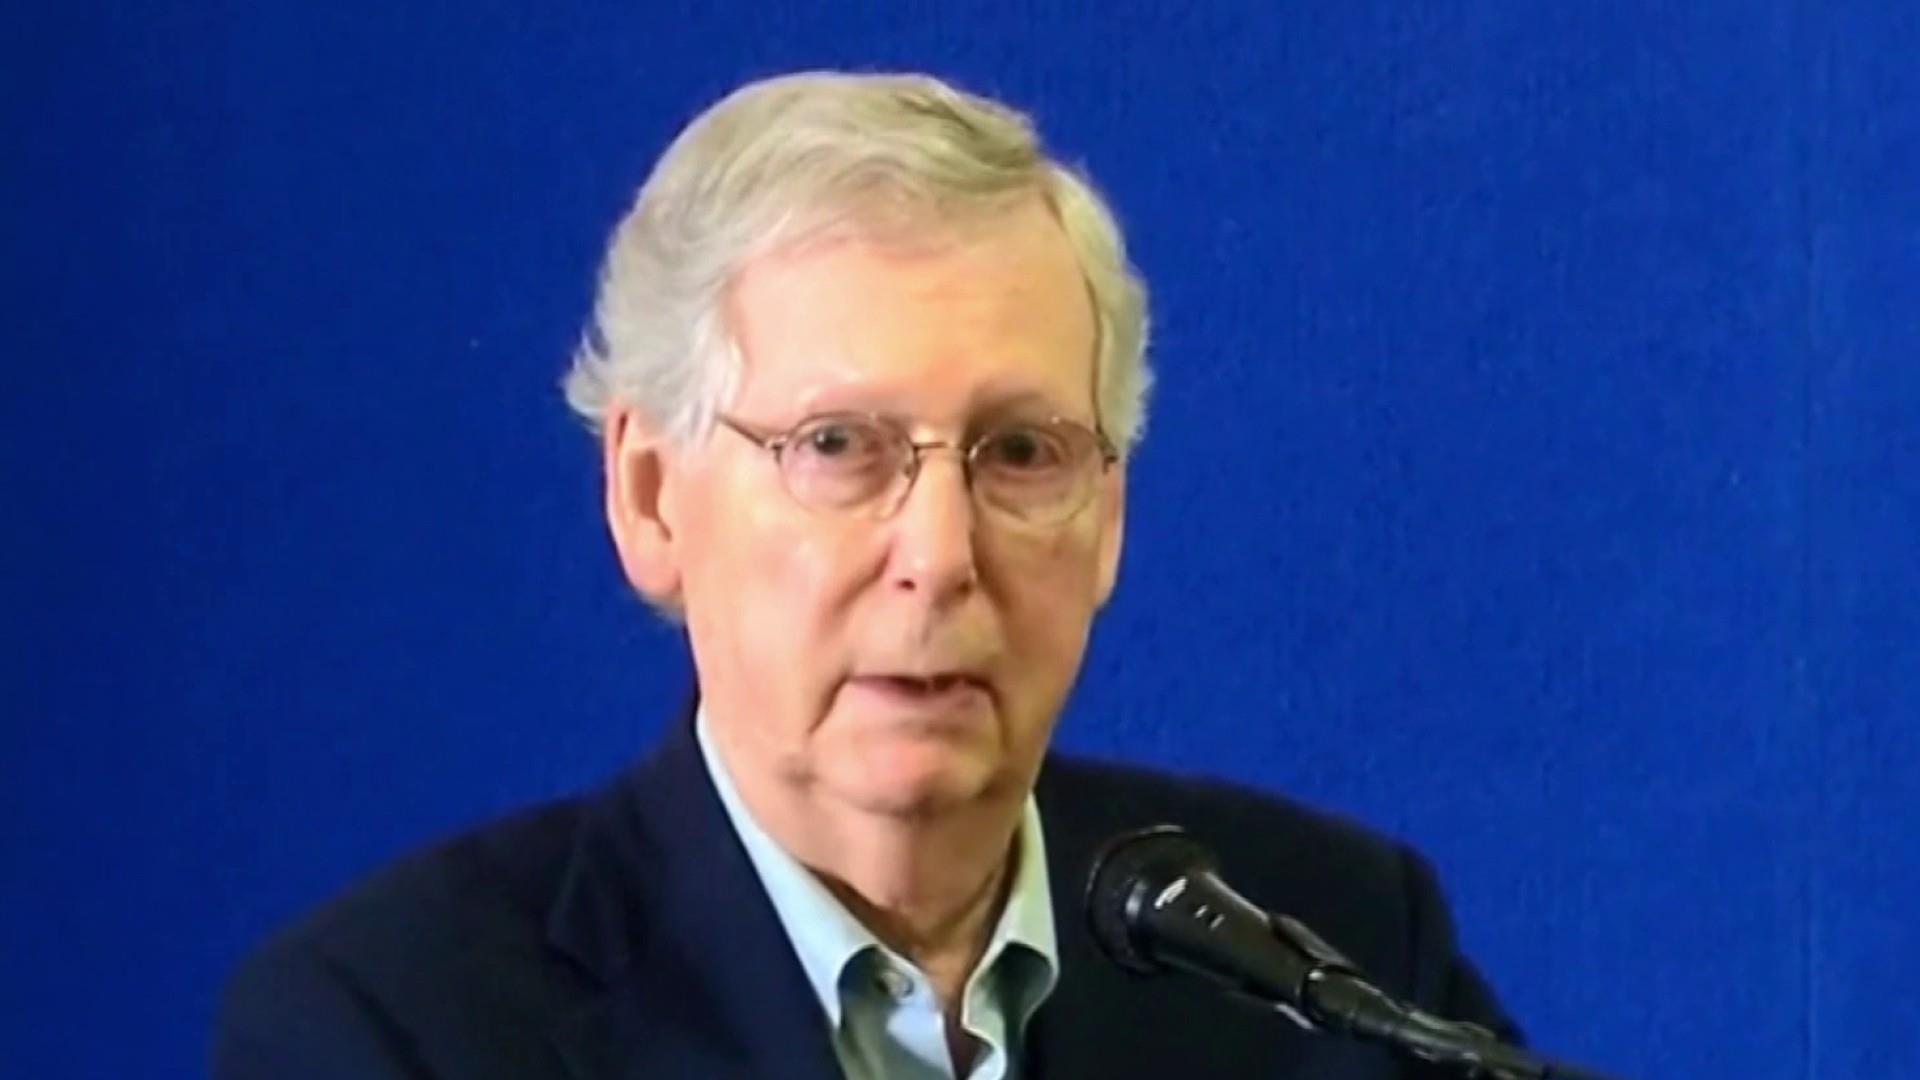 'The Grim Reaper': Why McConnell is Trump's collusion enabler